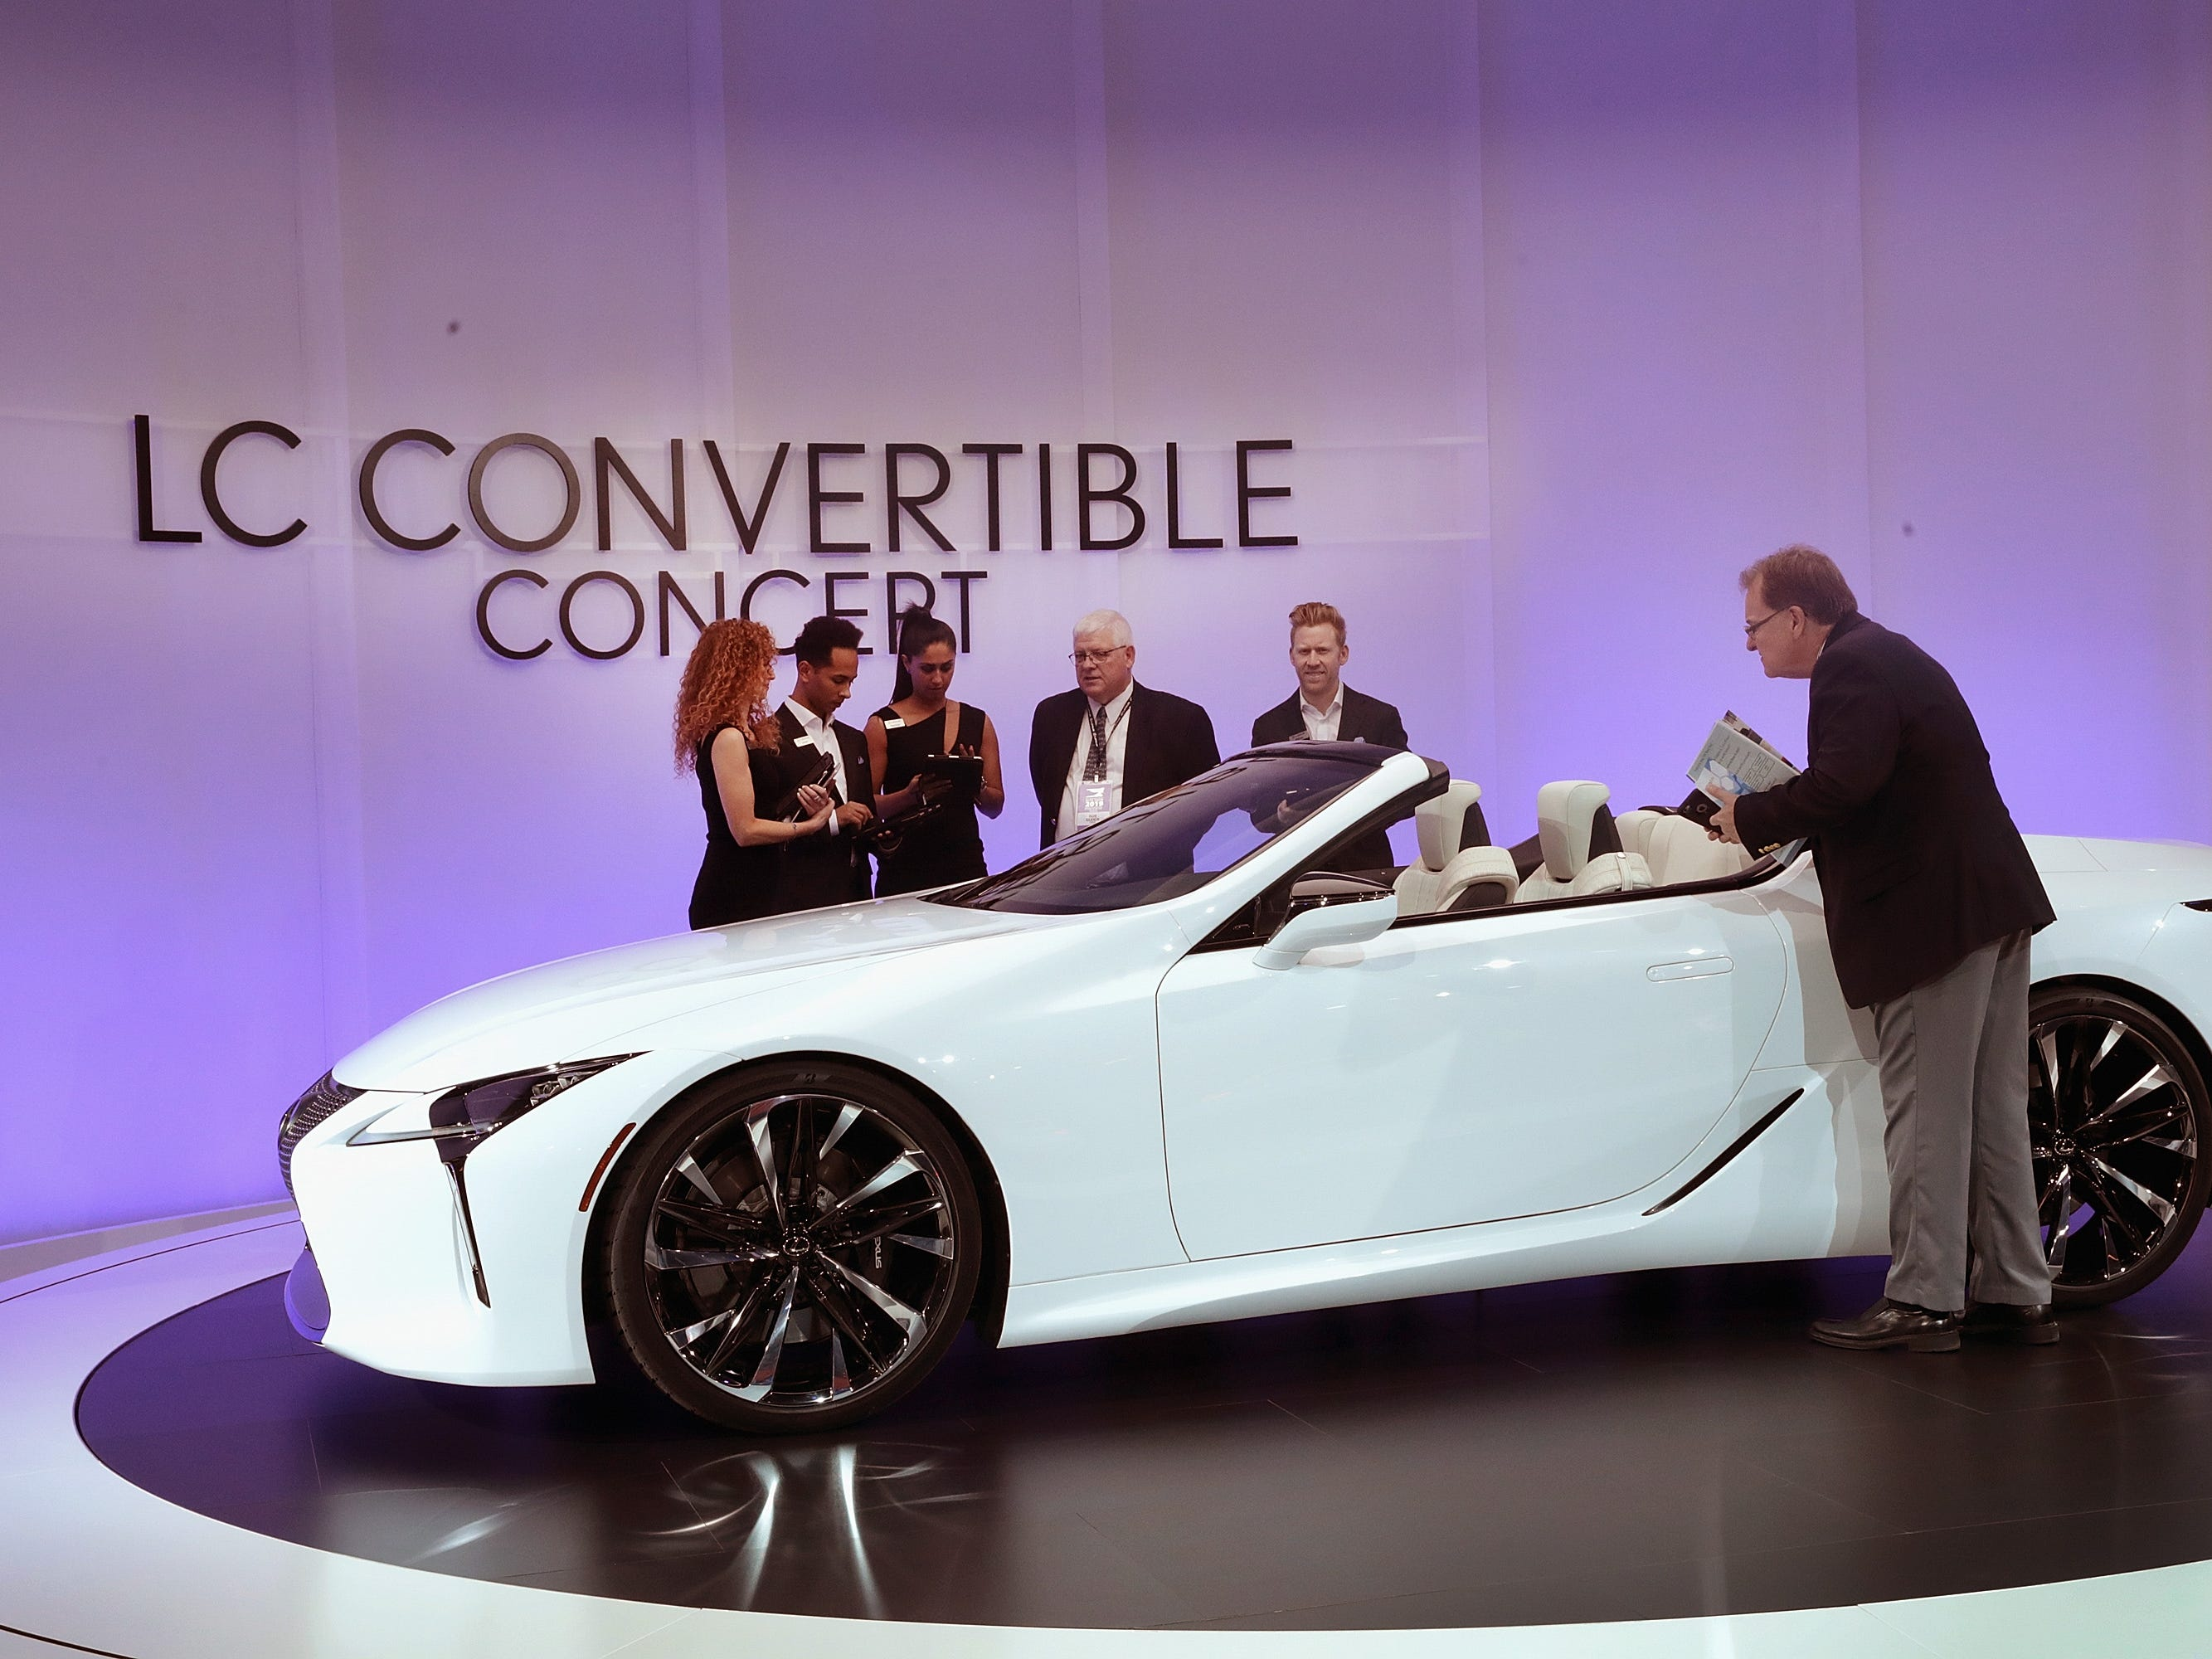 Lexus shows off the LC convertible concept.